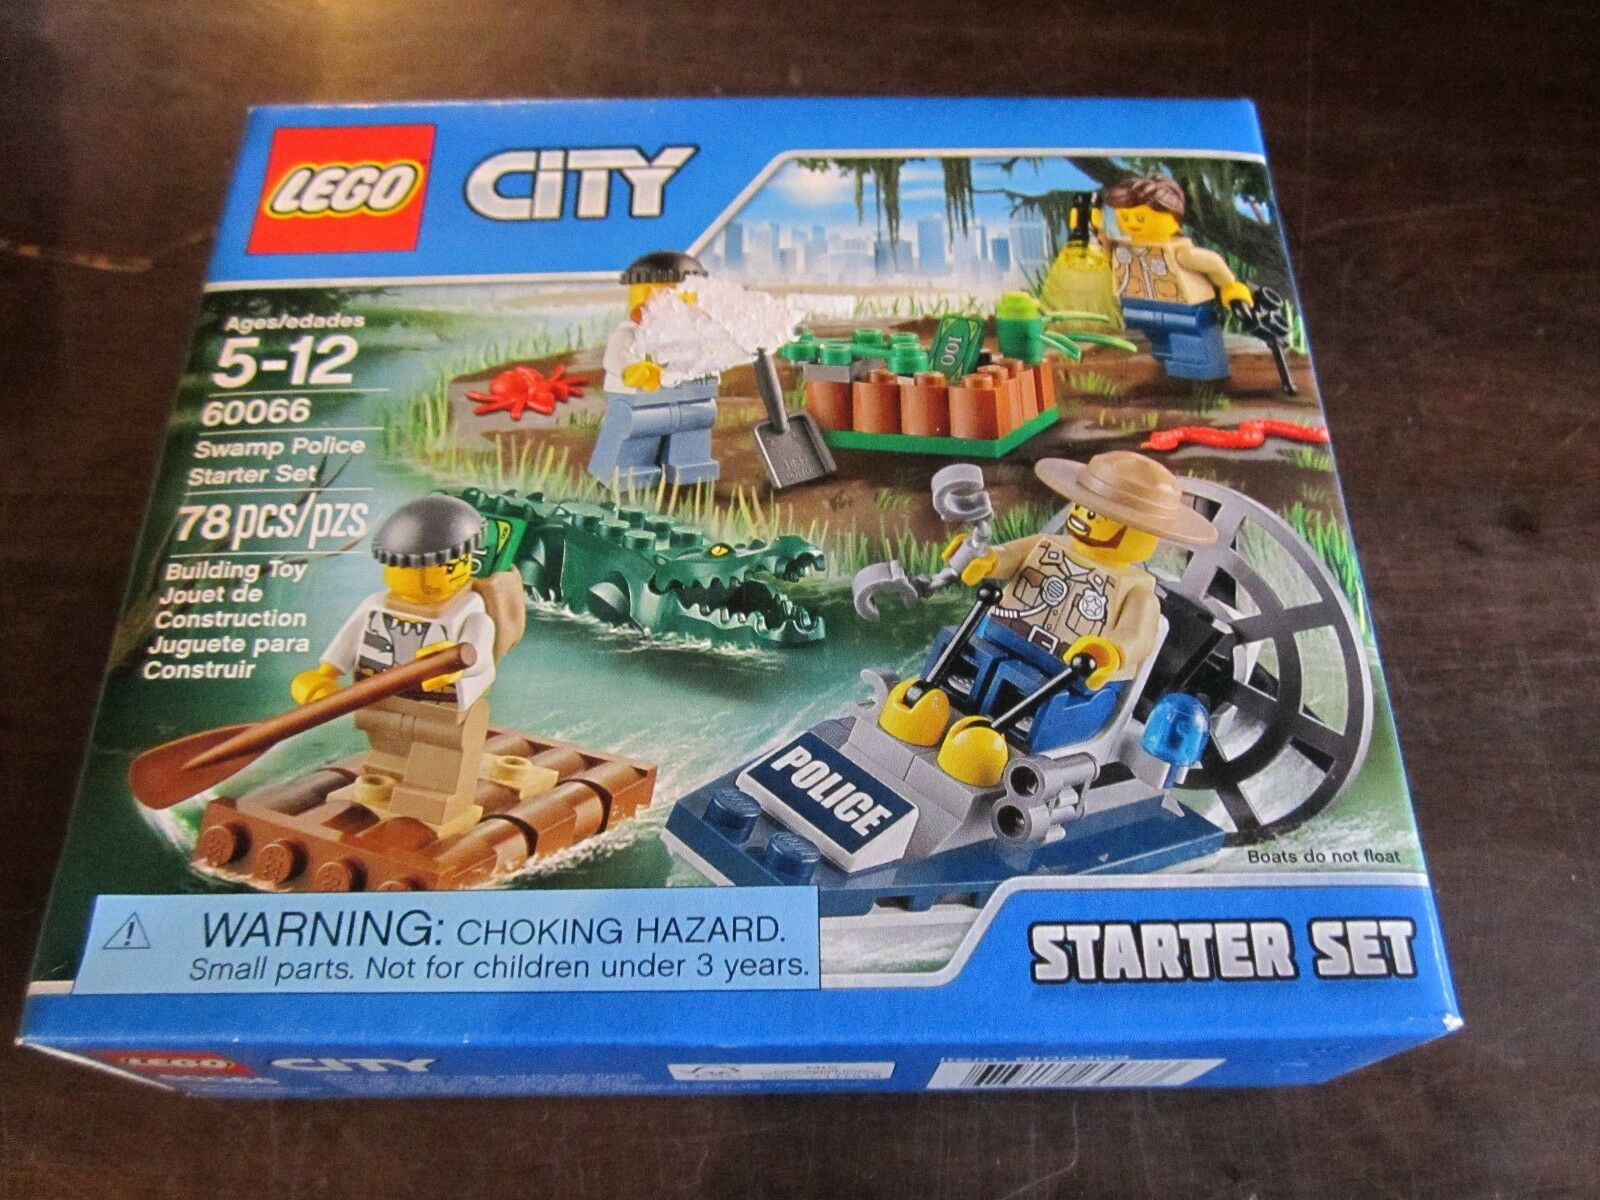 LEGO City new 60066 Swamp Police Starter Set Police Croc Building Toy sled dogs